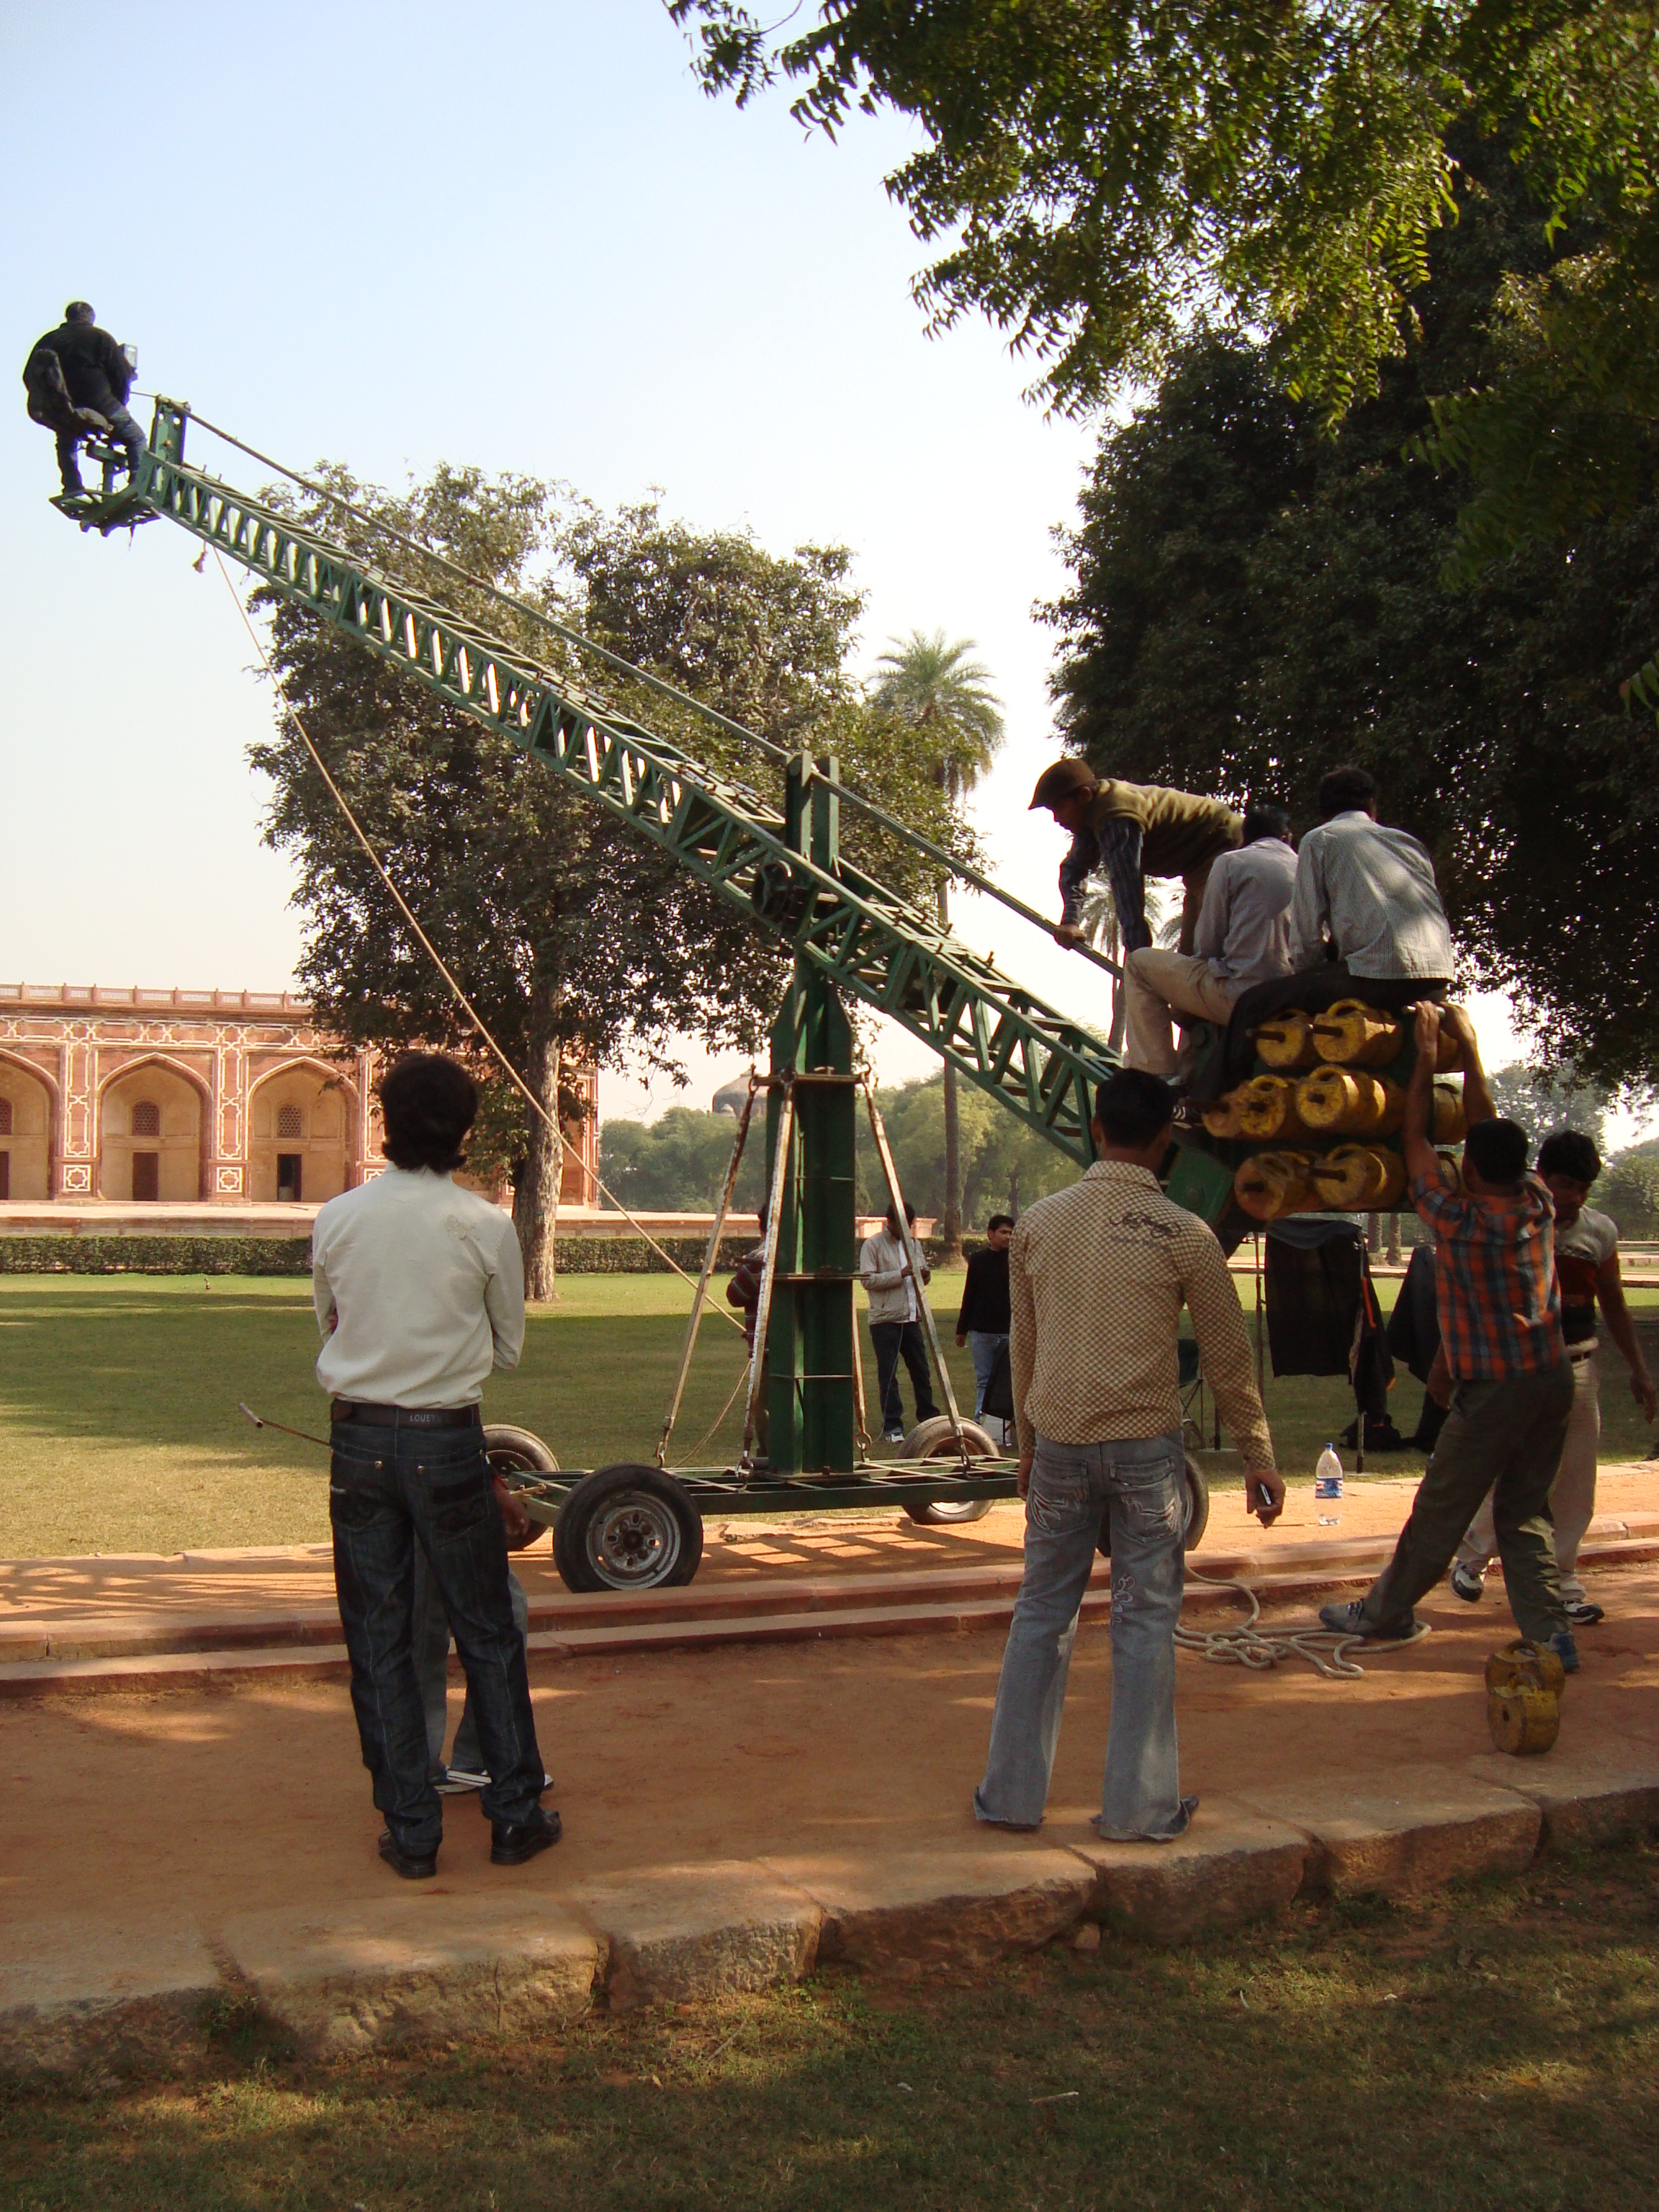 File:Film Shooting From a Crane.jpg - Wikimedia Commons